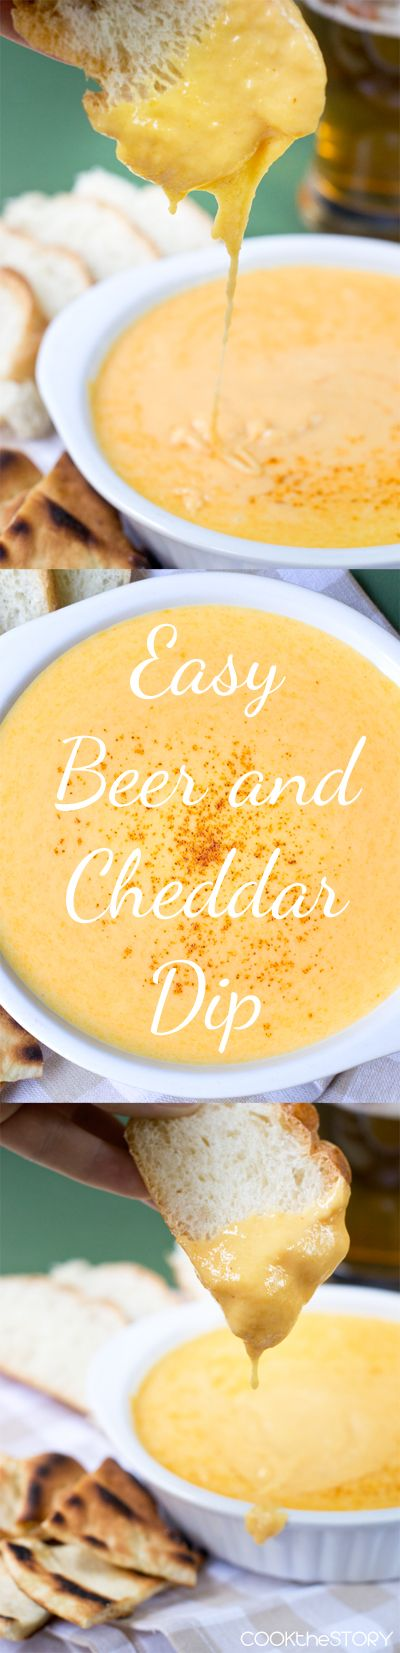 Hot Beer and Cheddar Dip from COOKtheSTORY.com